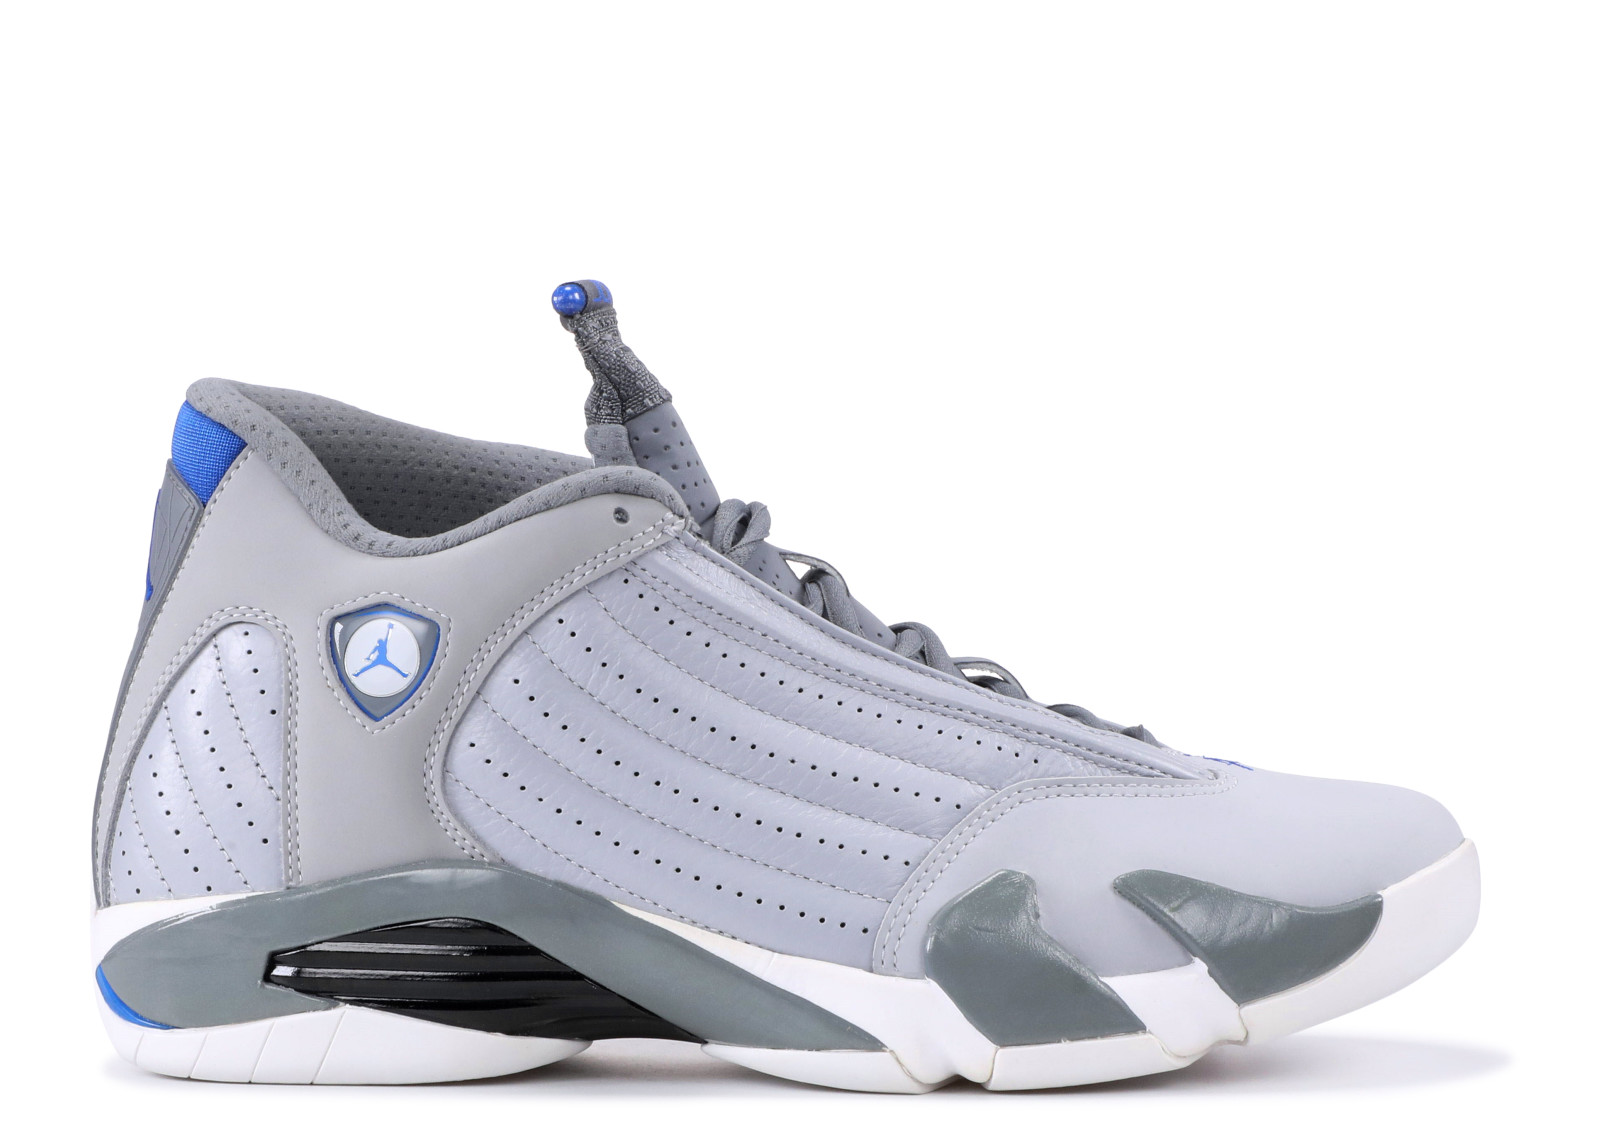 on sale 8a071 8a764 Jordan 14 Retro Wolf Grey